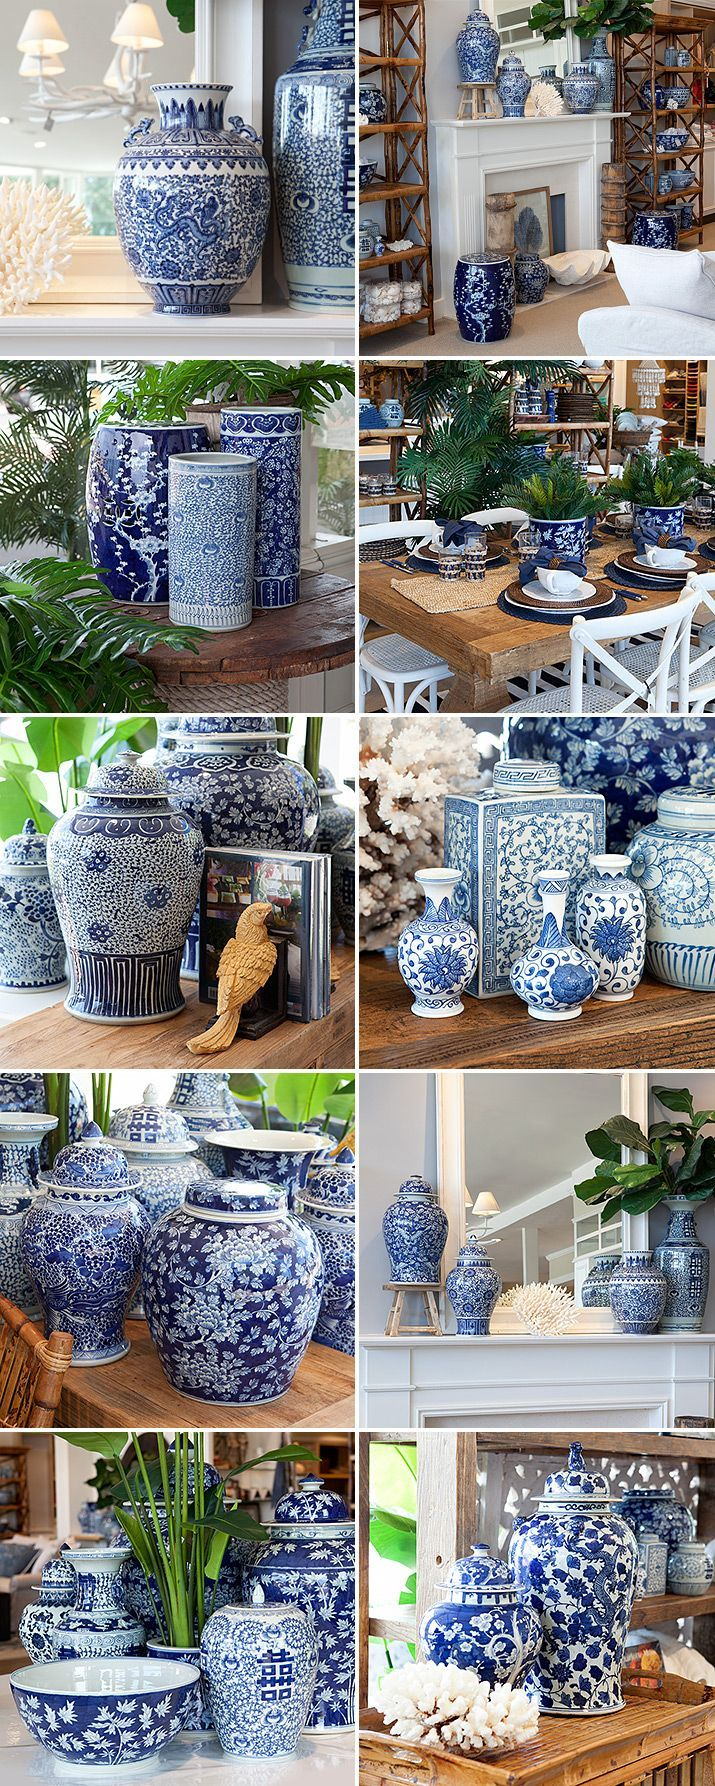 Blue and white dynasty ginger jars.                                                                                                                                                                                 More